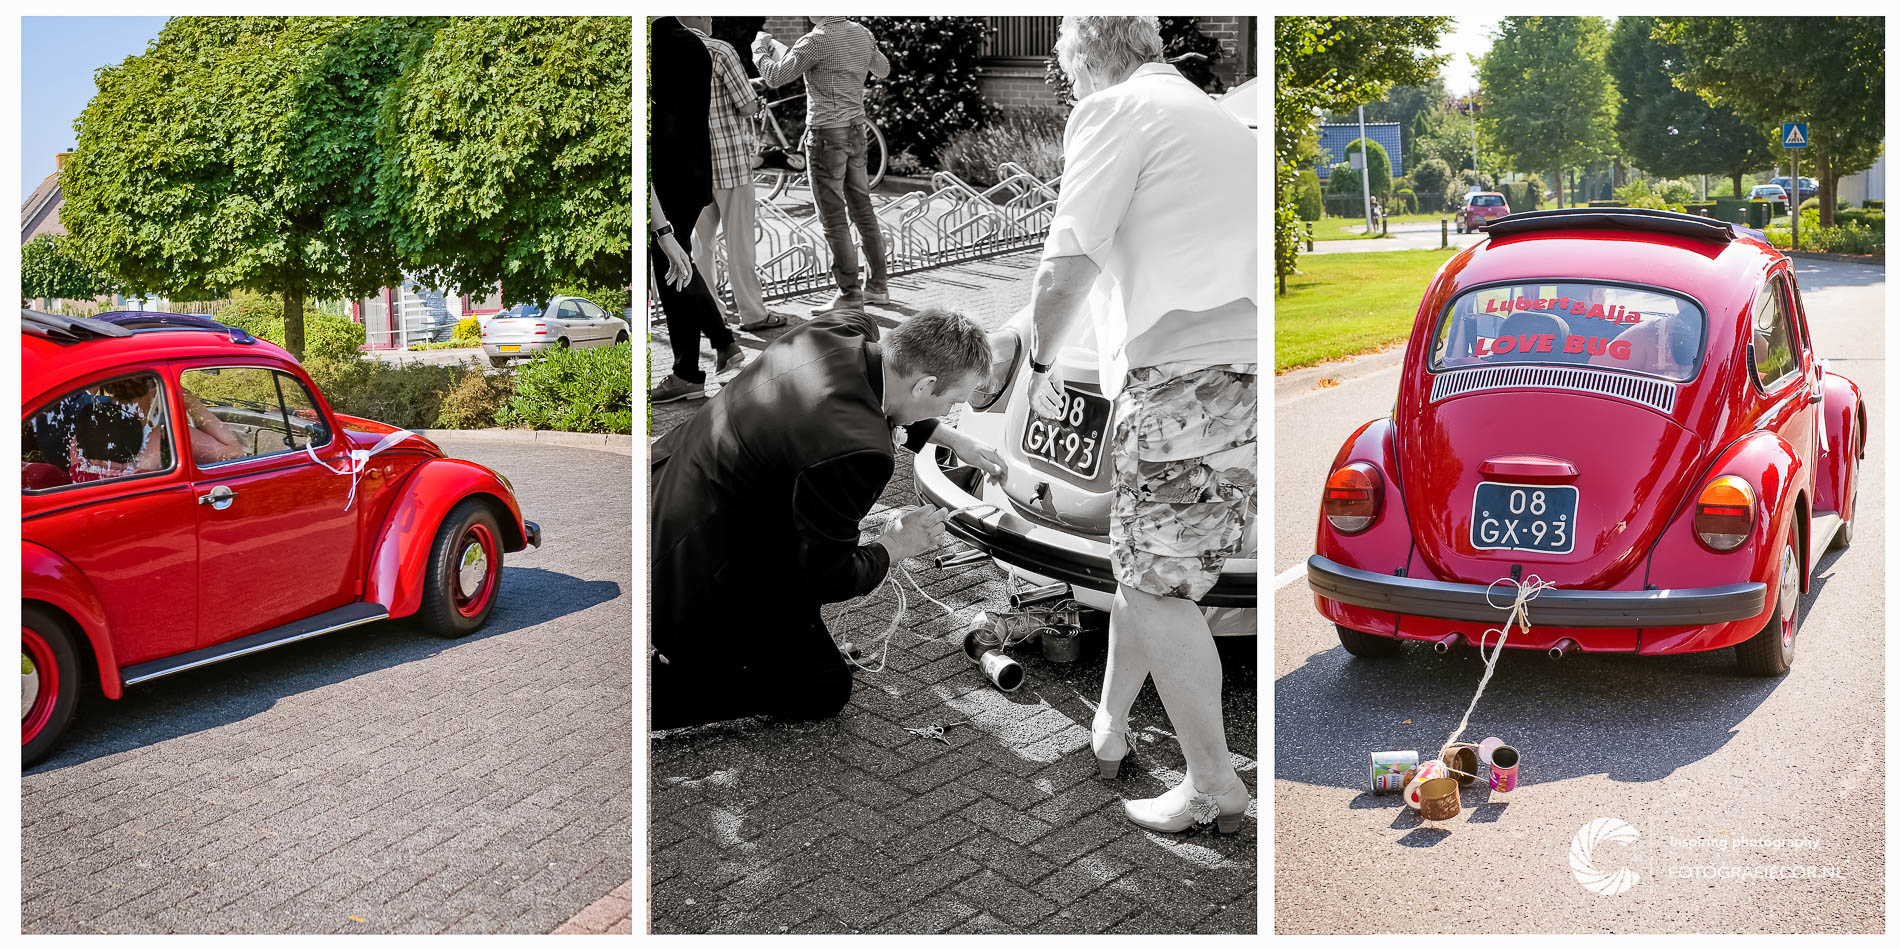 Trouwreportage | Trouwfoto's | just married in rode kever